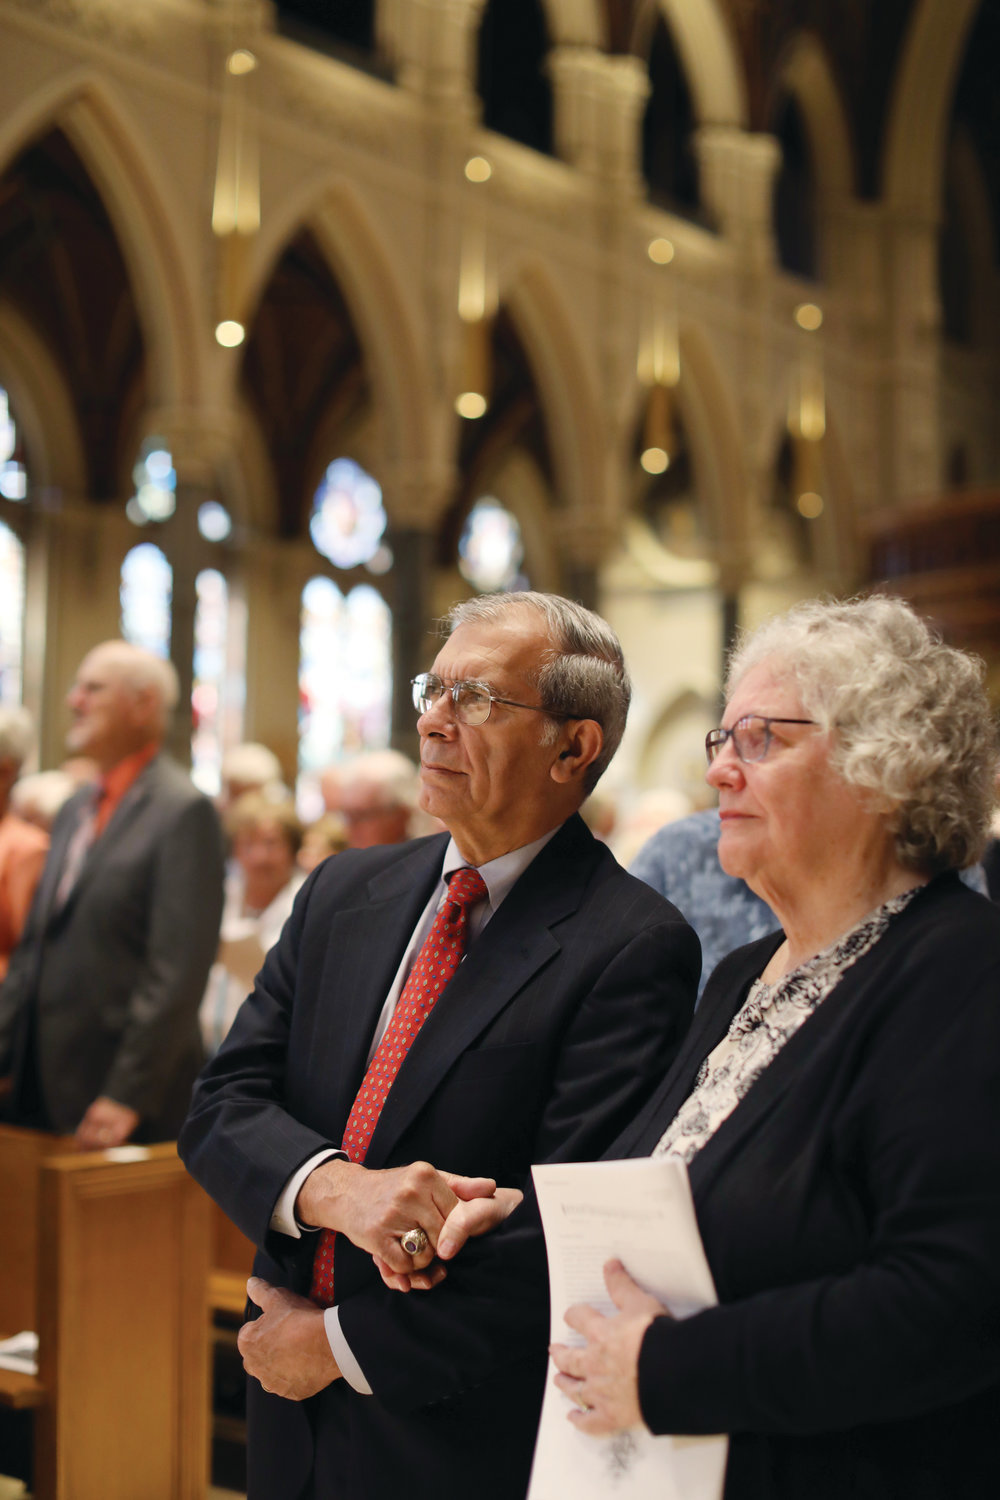 Hundreds of couples gathered this past September at the Cathedral of SS. Peter and Paul to renew their wedding vows.